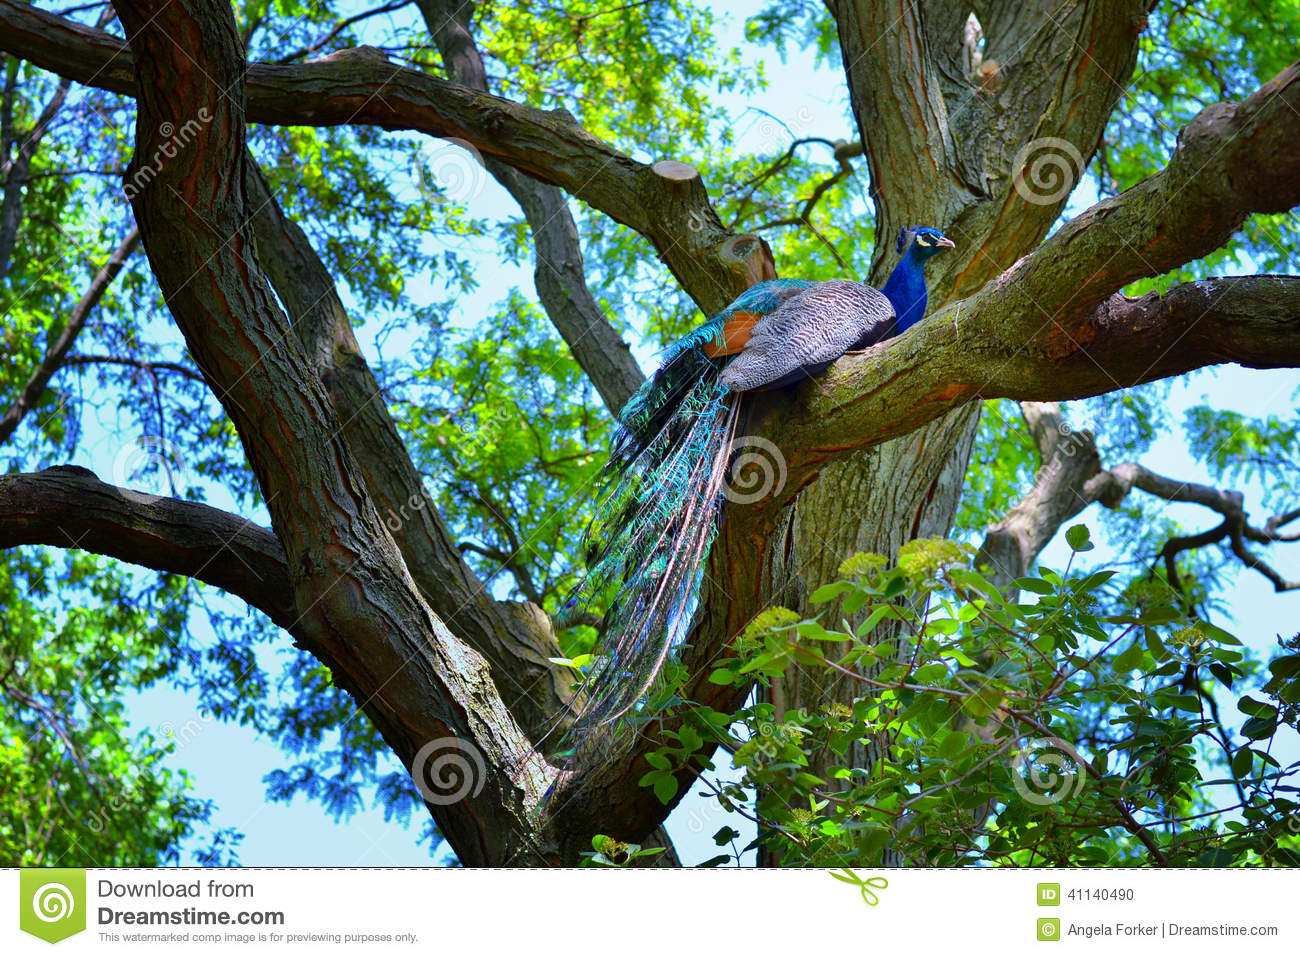 the highest branch on the tree The tree should naturally fill in that open area at the top of the tree to make it more symmetrical the branches and leaves are designed to grow and reach out for sunlight, so likely one of those top branches should elongate to fill the gap.